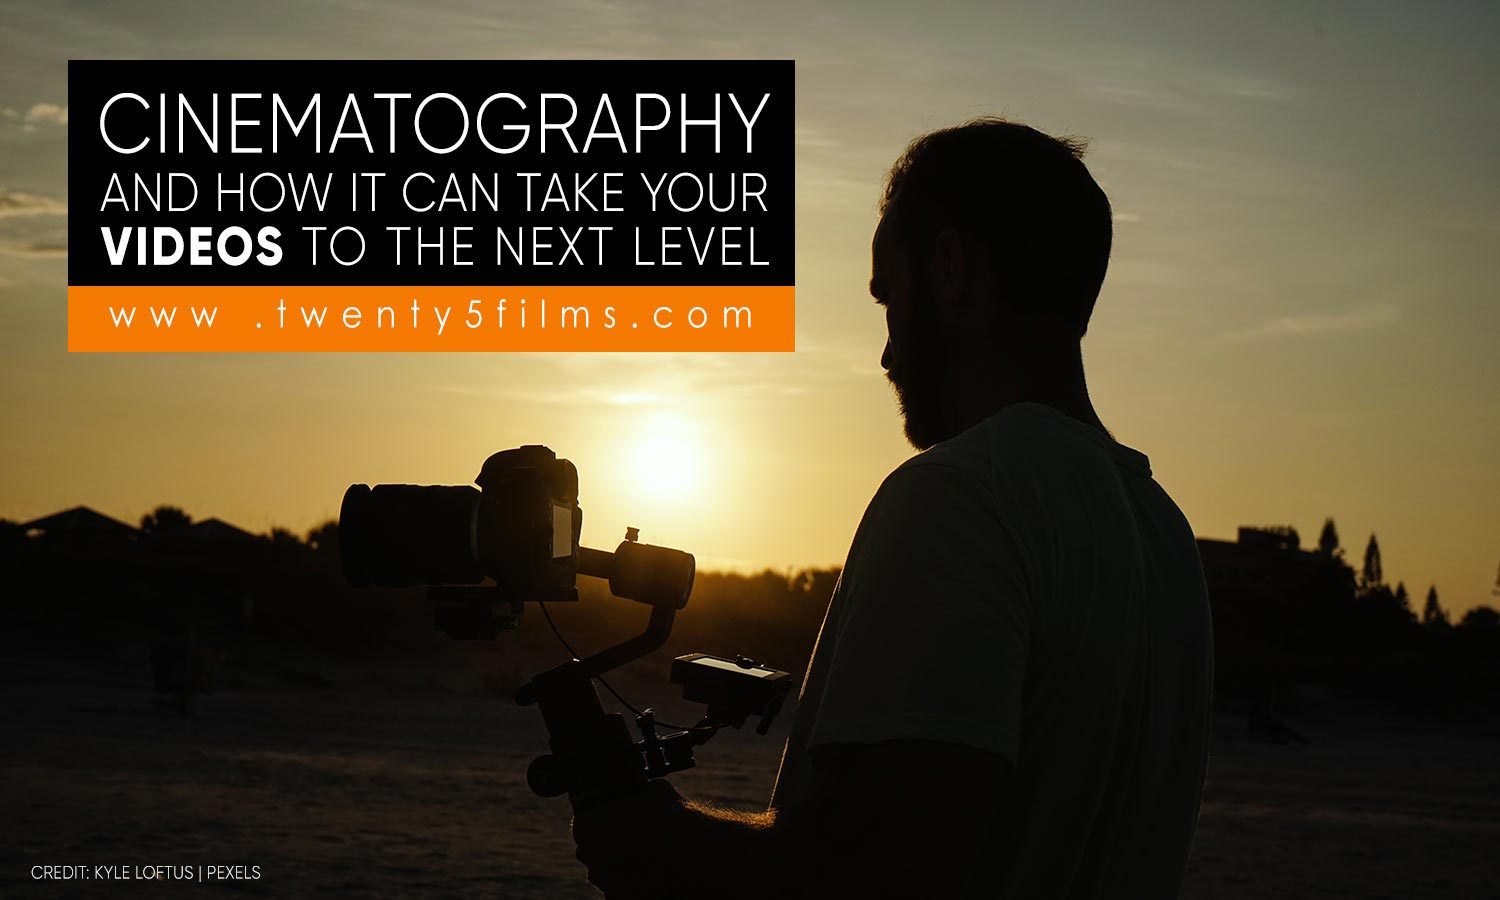 Cinematography and How It Can Take Your Videos to the Next Level